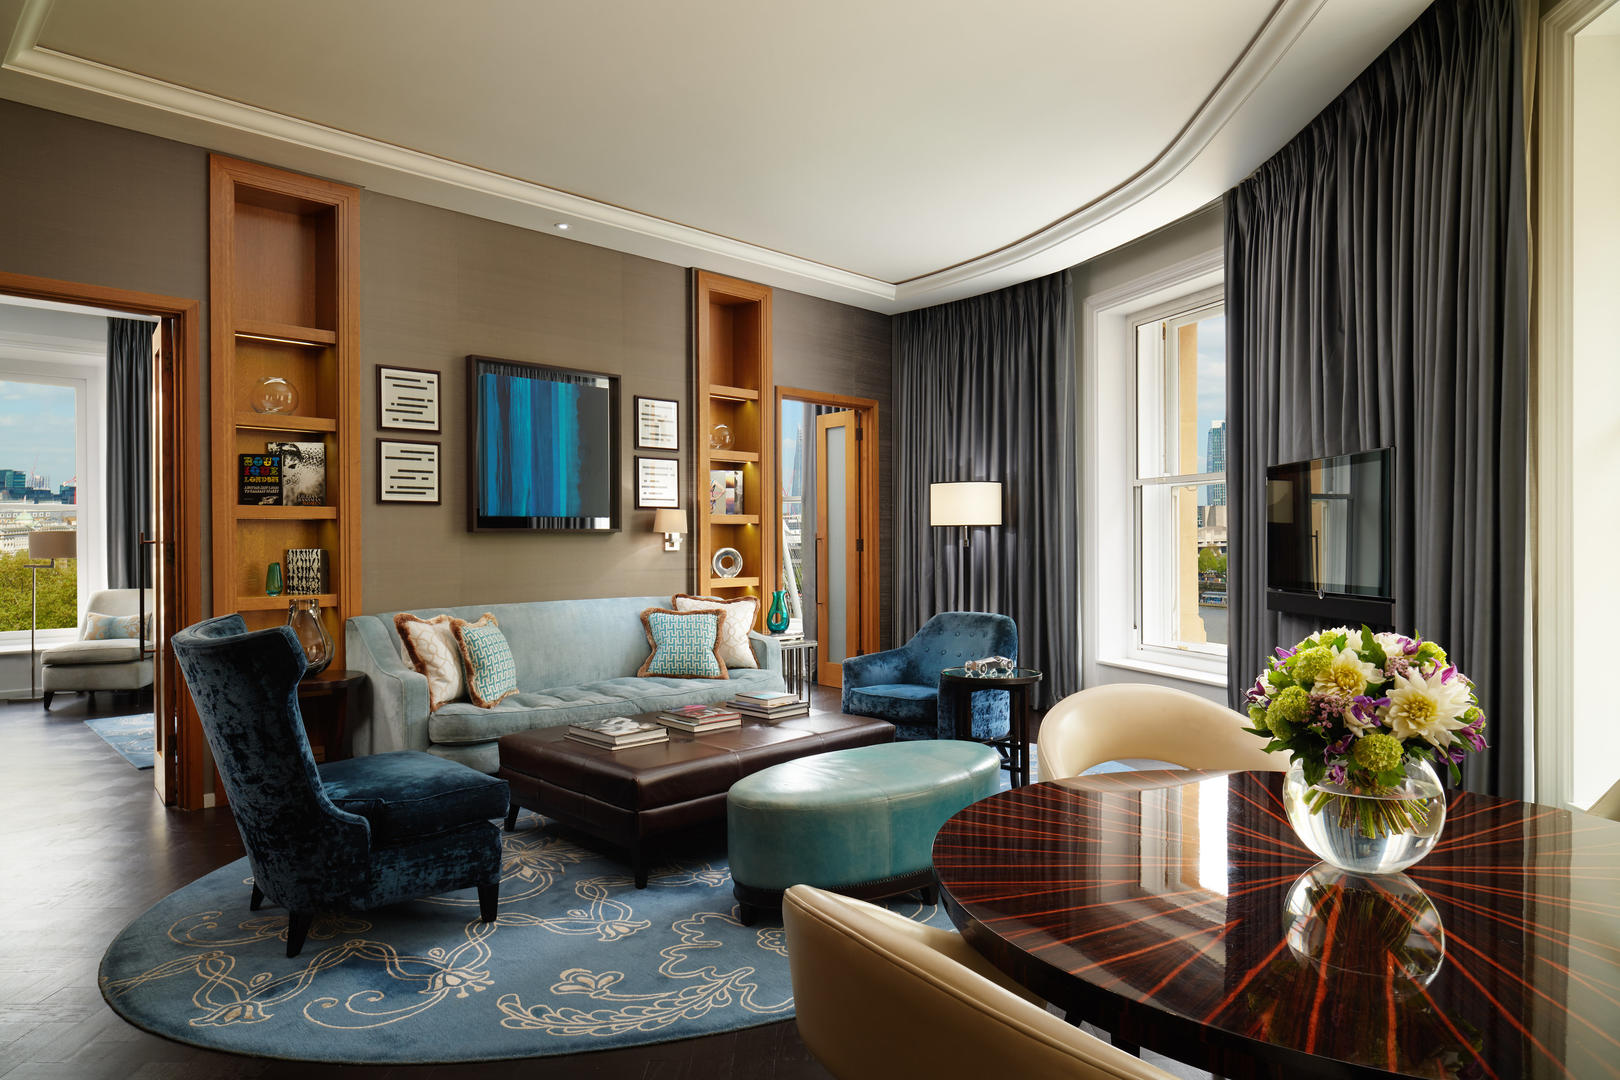 Corinthia-London-Hotel-River-Suite-Lounge